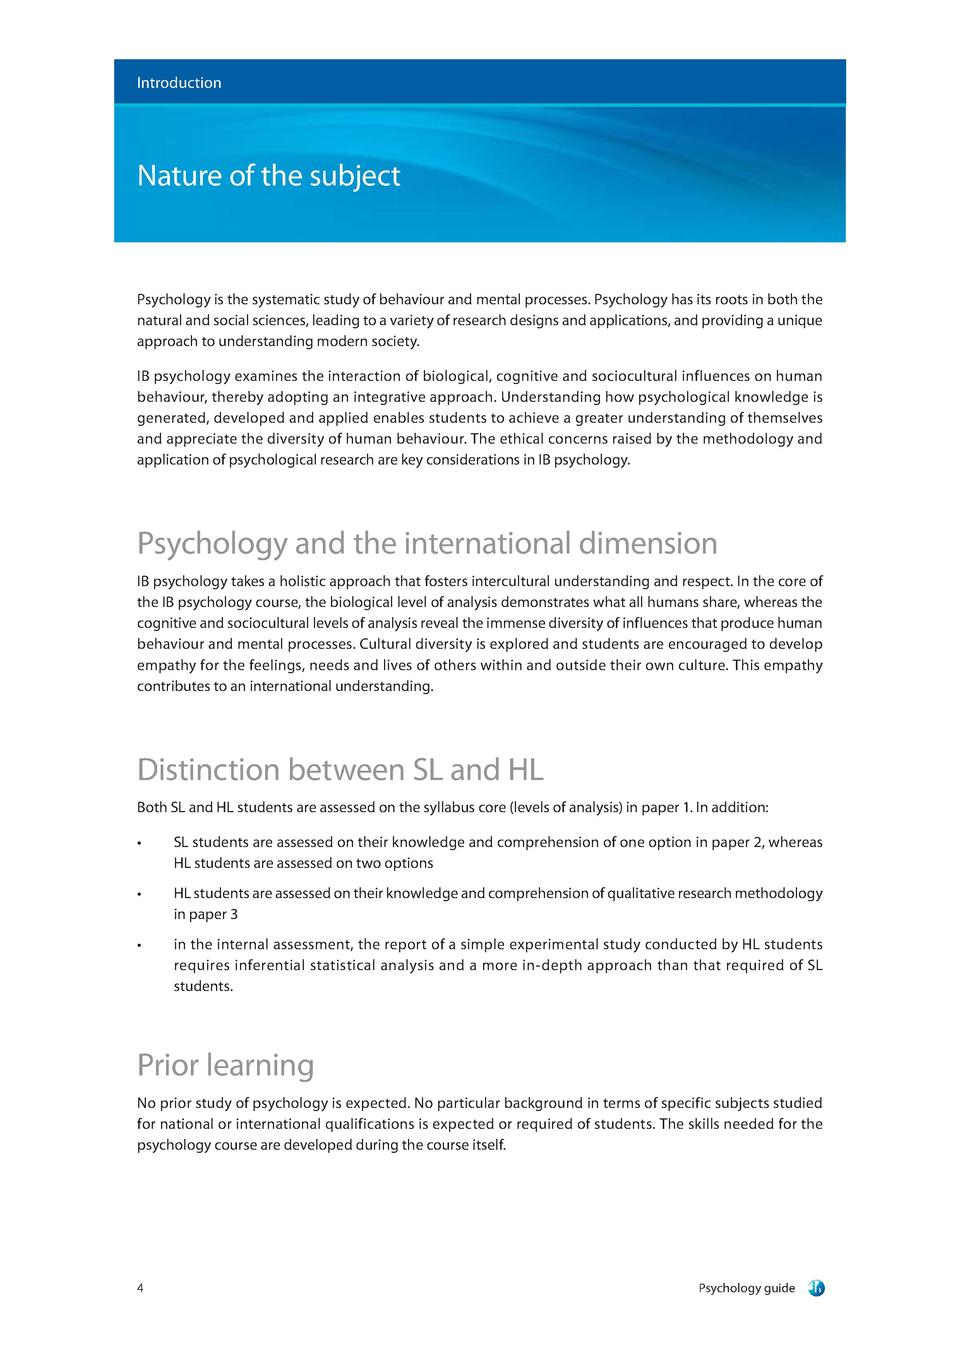 ib psychology guide first exam com introduction nature of the subject psychology is the systematic study of behaviour and mental processes